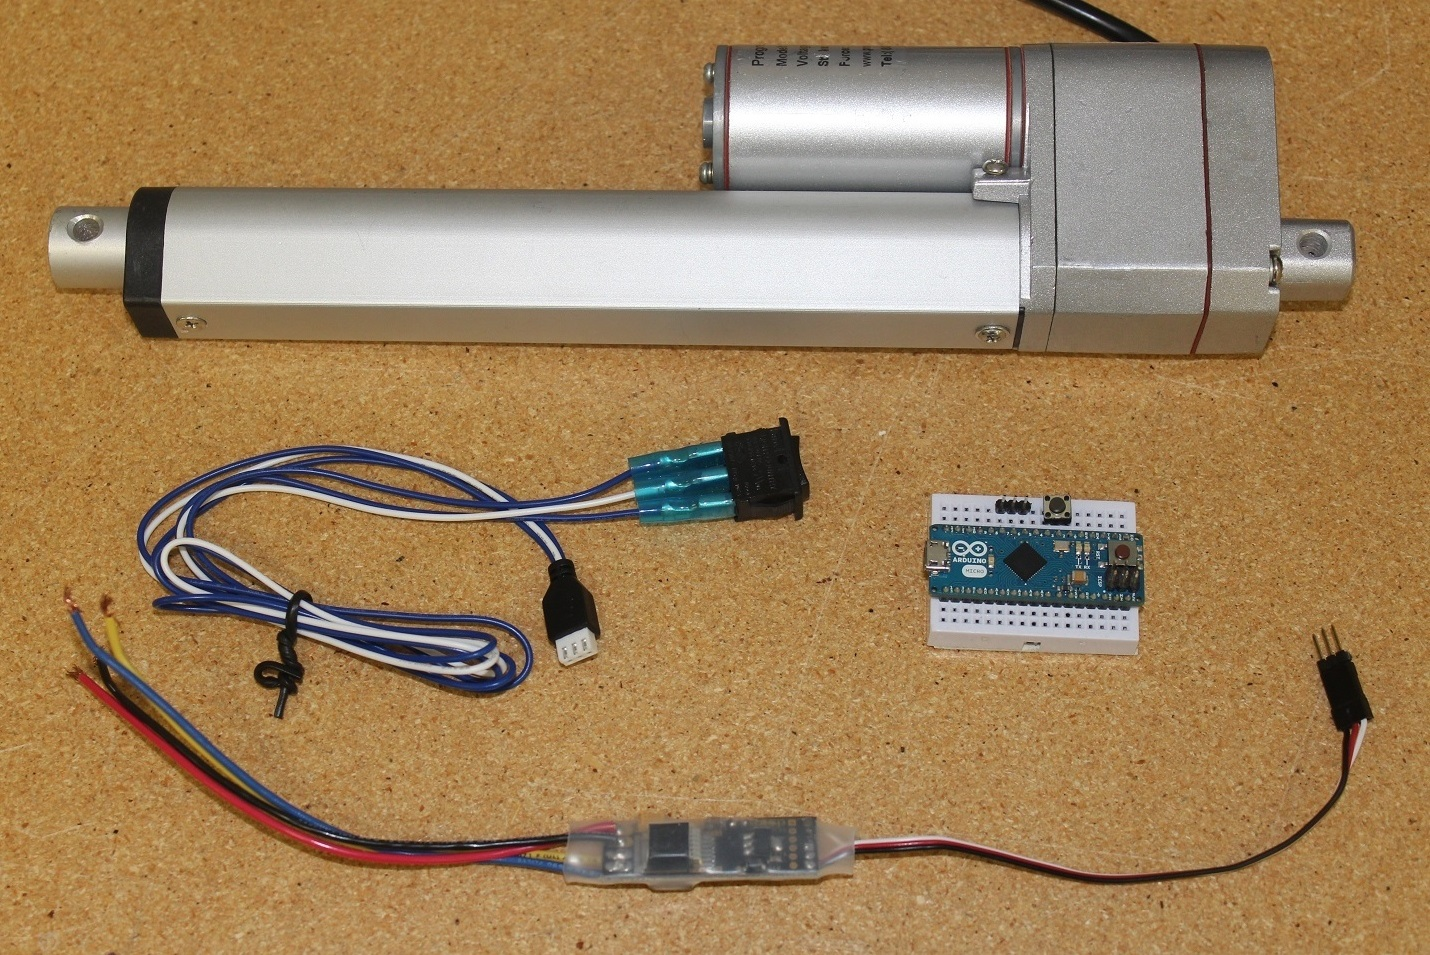 Picture of Potentiometer Feedback Control: Implementing a Soft Extend Limit